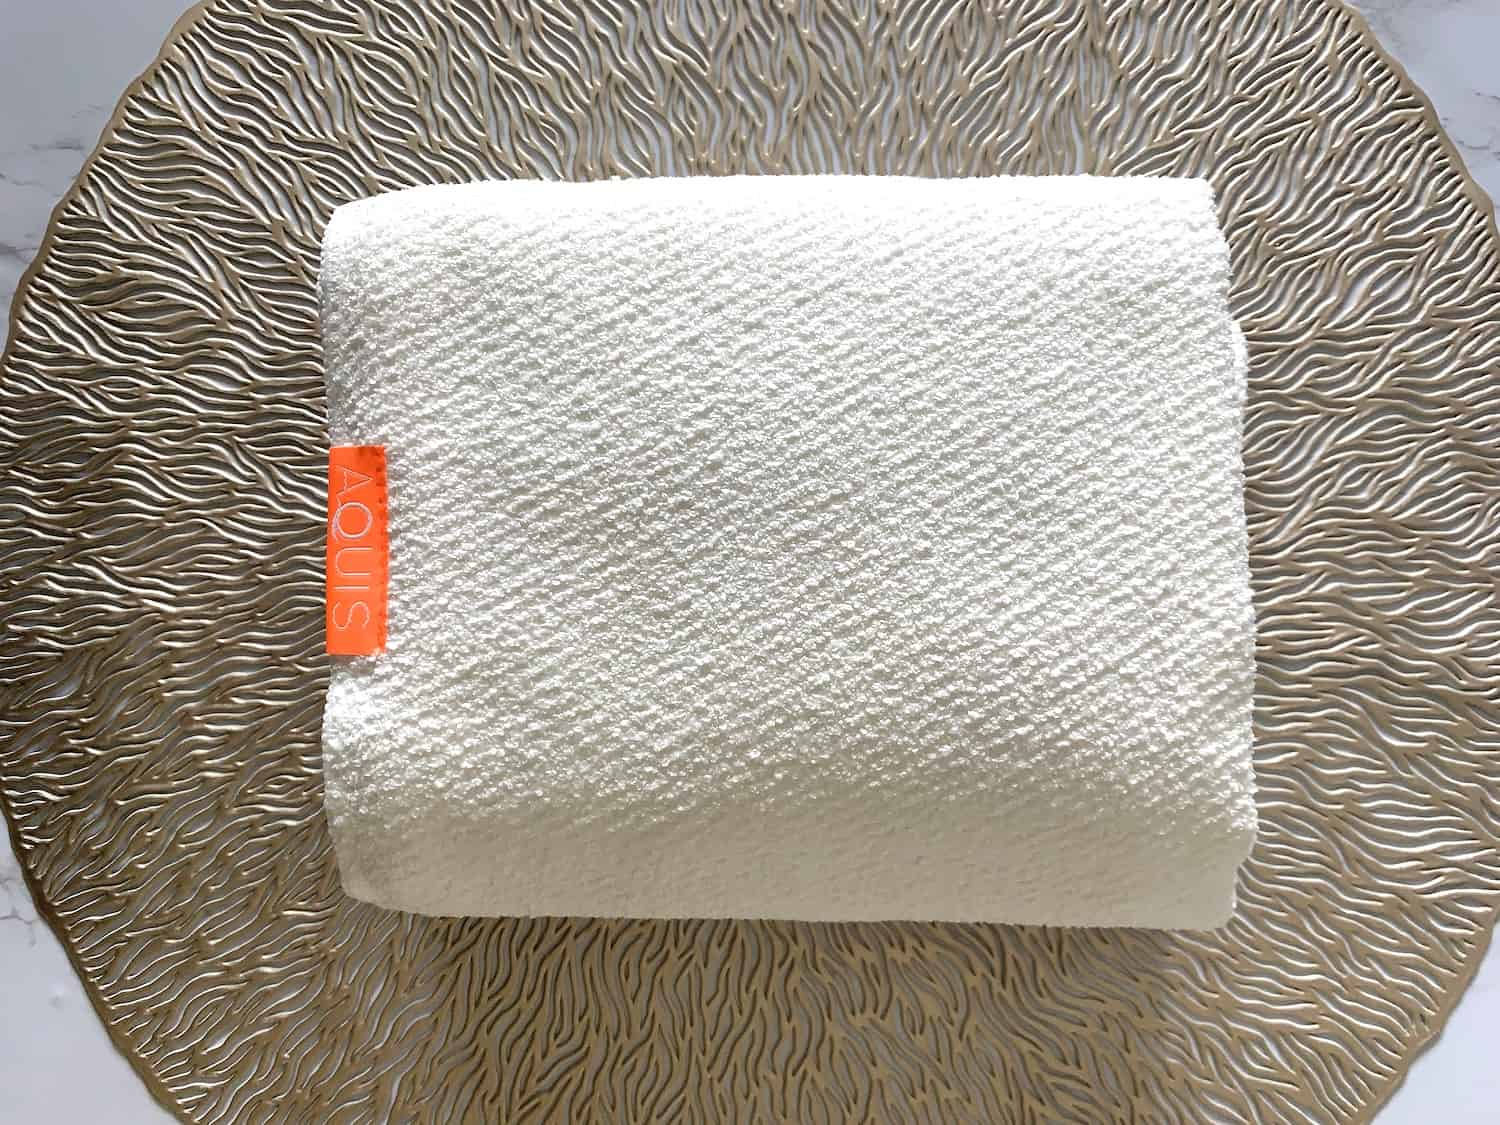 Aquis Lisse Luxe Rapid Dry Long Hair Towel